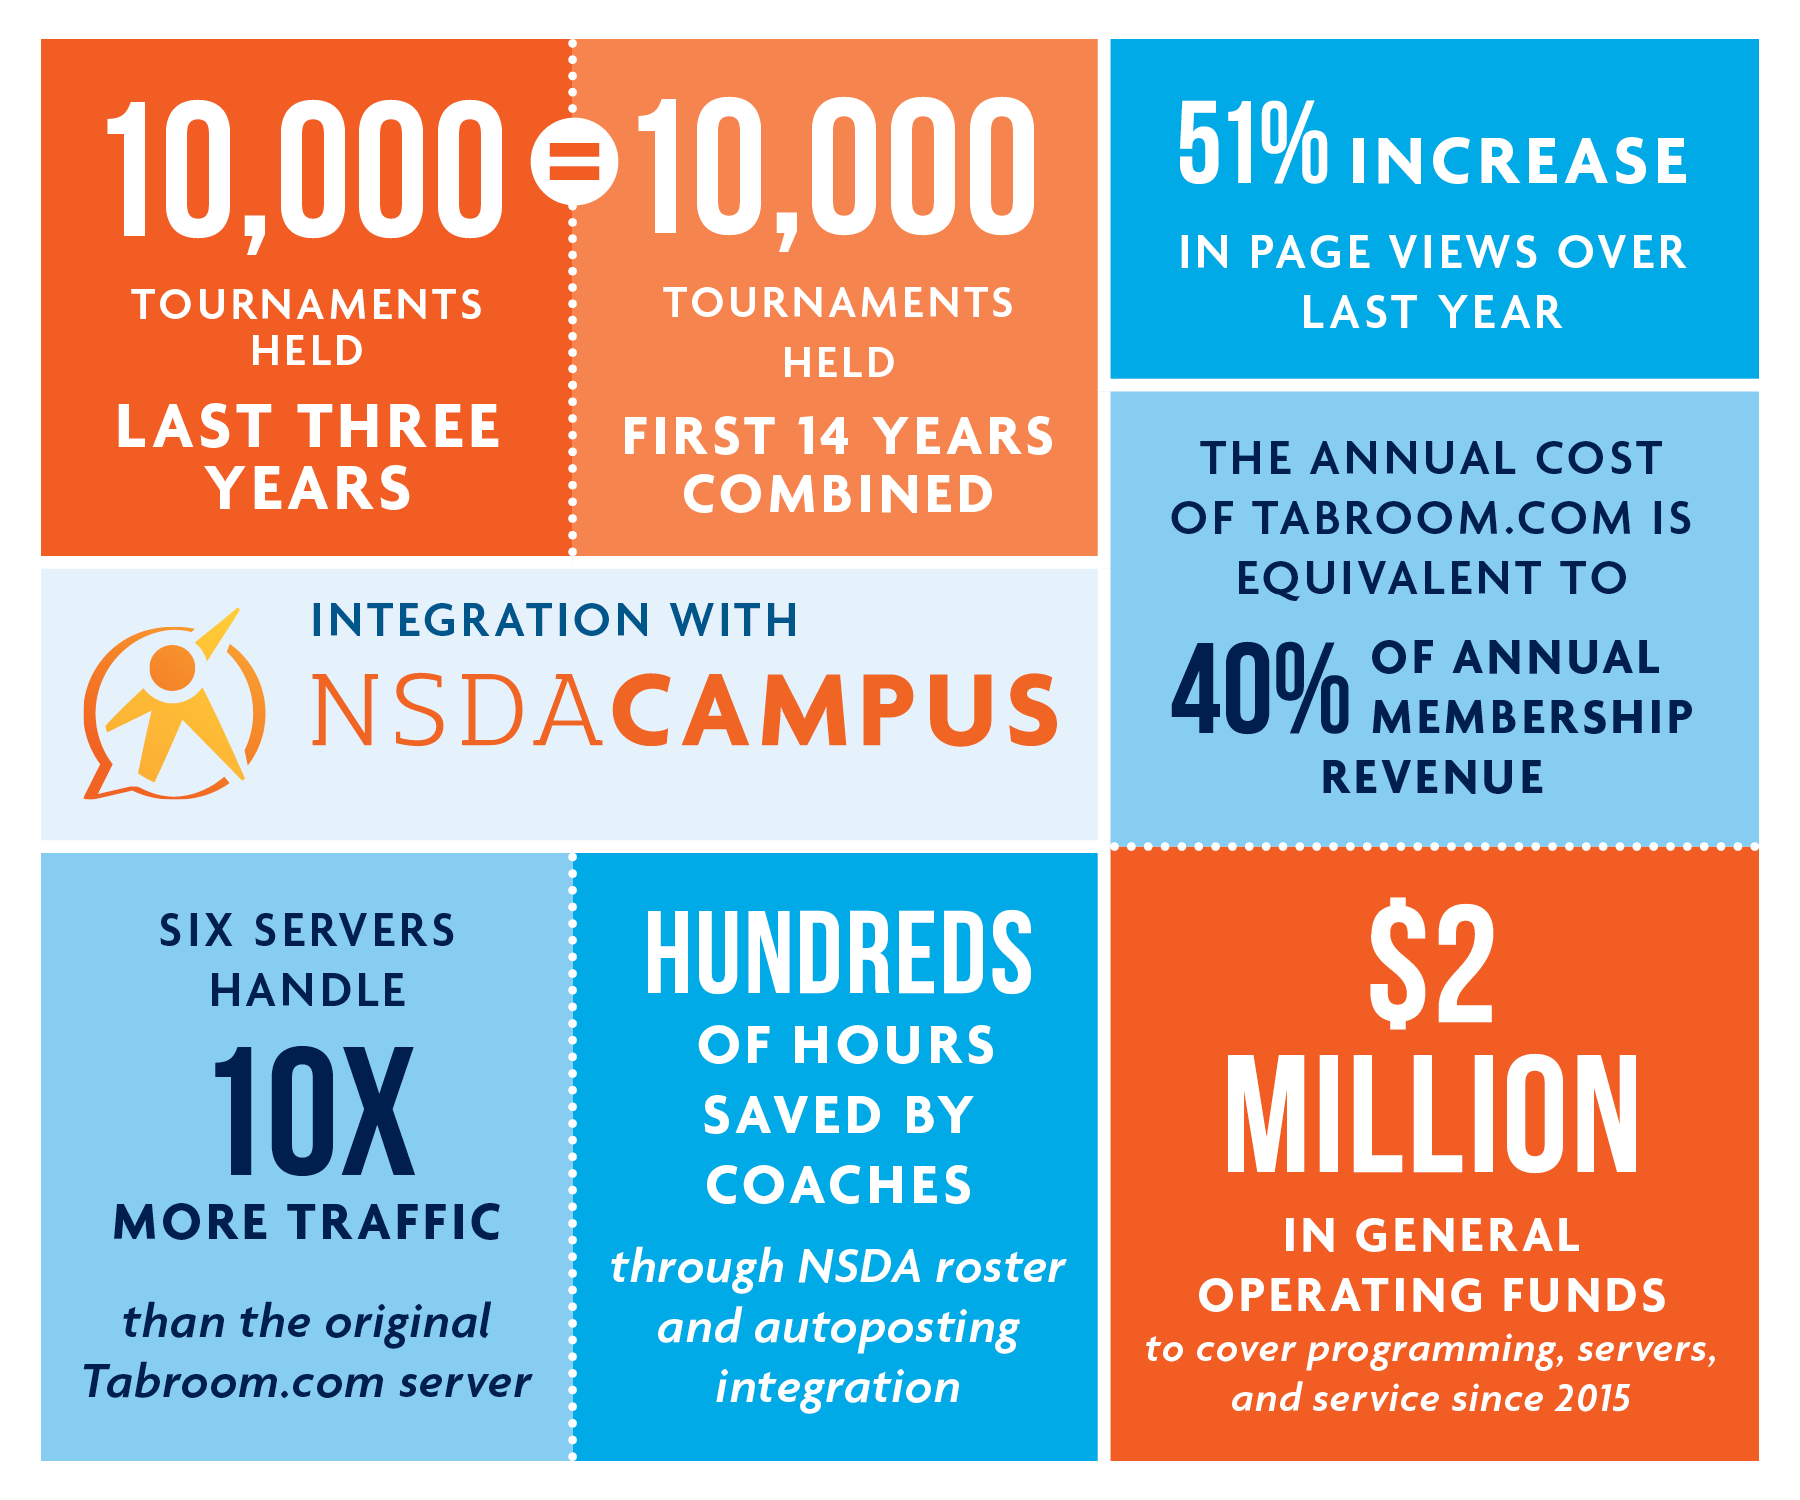 10,000 tournaments held, last three years = first 14 years Combined. 51% increase in page views over last year. Integration with NSDA Campus. The annual cost of Tabroom is equivalent to 40% of annual membership revenue. Six servers handle 10 x more traffic than the original Tabroom.com server. Hundreds of hours saved by coaches through NSDA roster and autoposting integration. $2 million in general operating funds to cover programming, servers, and service since 2015